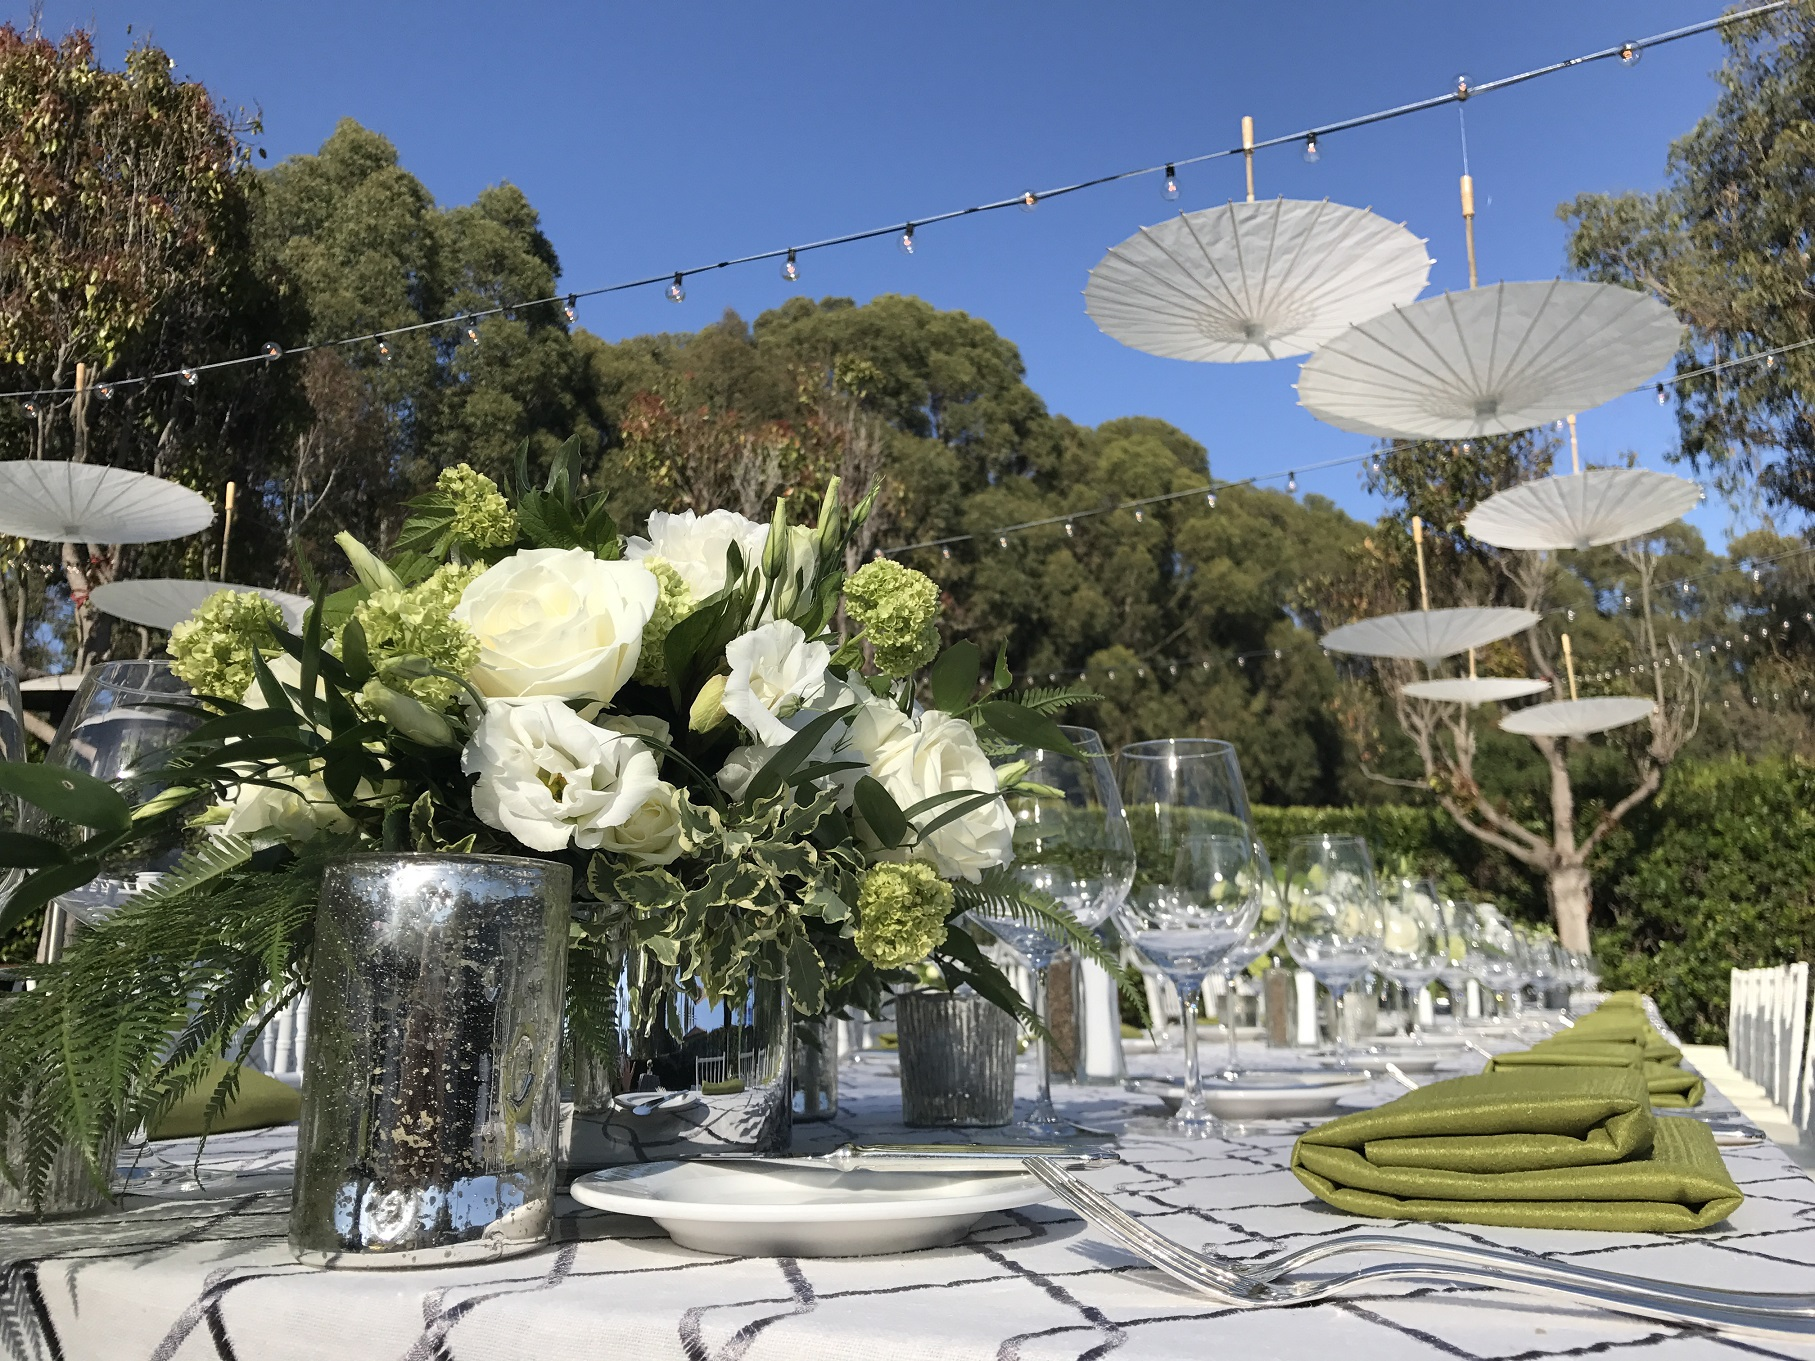 Red and White Floral decor at picturesque Alisal Lake